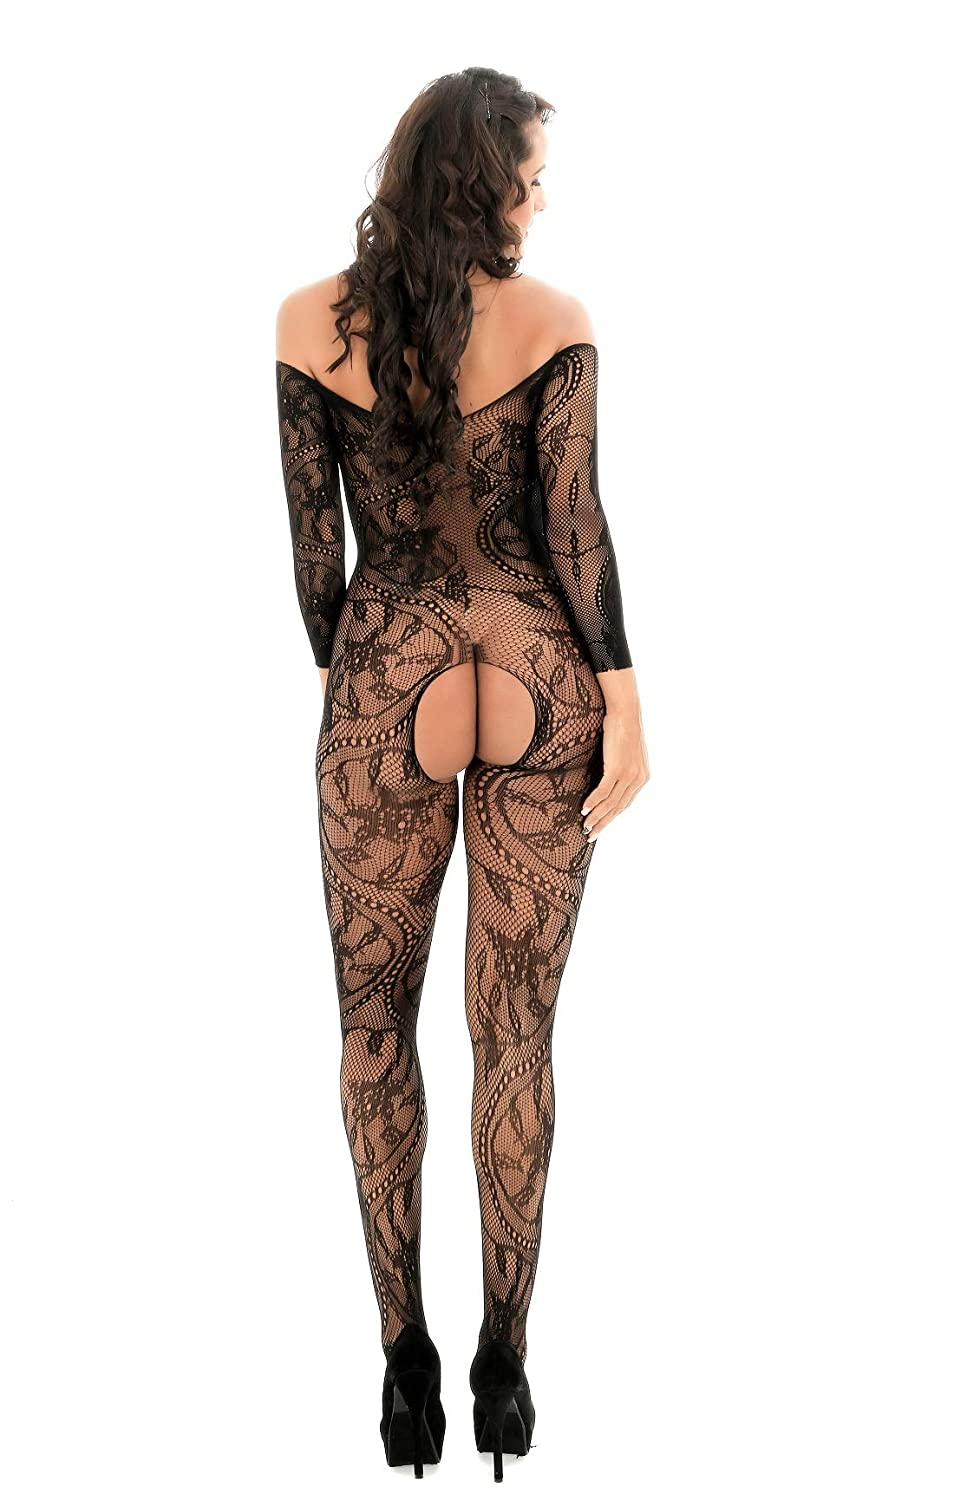 99324bc43 Amazon.com  HiSexy Women s Full Body Fishnet Bodystocking Long Sleeve Sheer  Sexy Foral Lingerie Bodysuit Black  Clothing